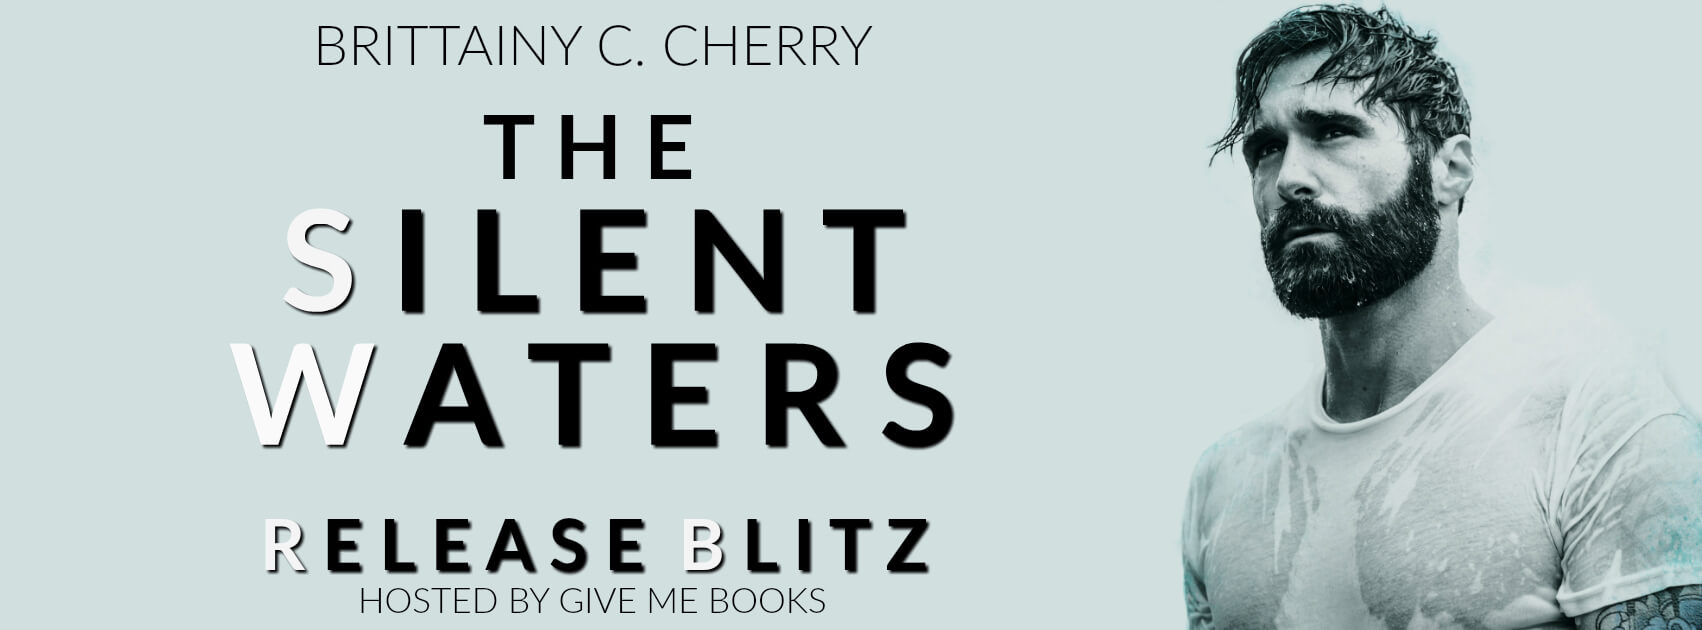 Review -- The Silent Waters by Brittainy C. Cherry